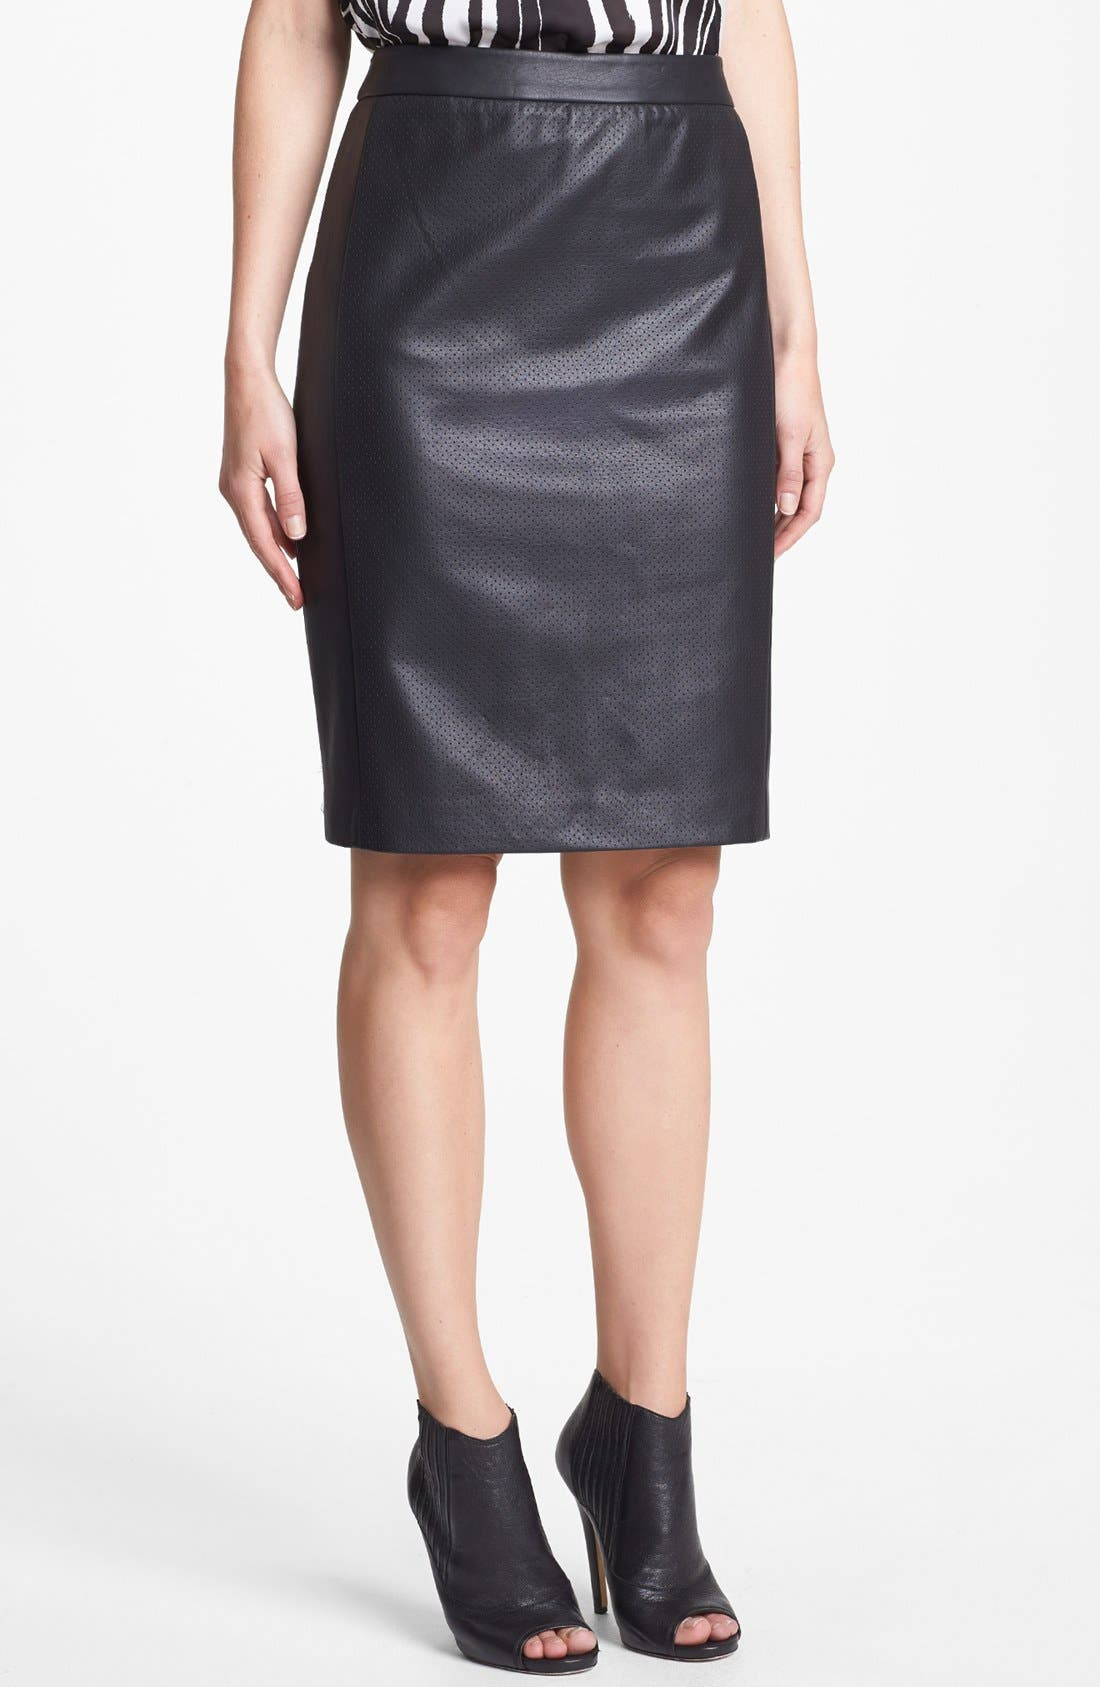 Alternate Image 1 Selected - Vince Camuto Perforated Faux Leather Pencil Skirt